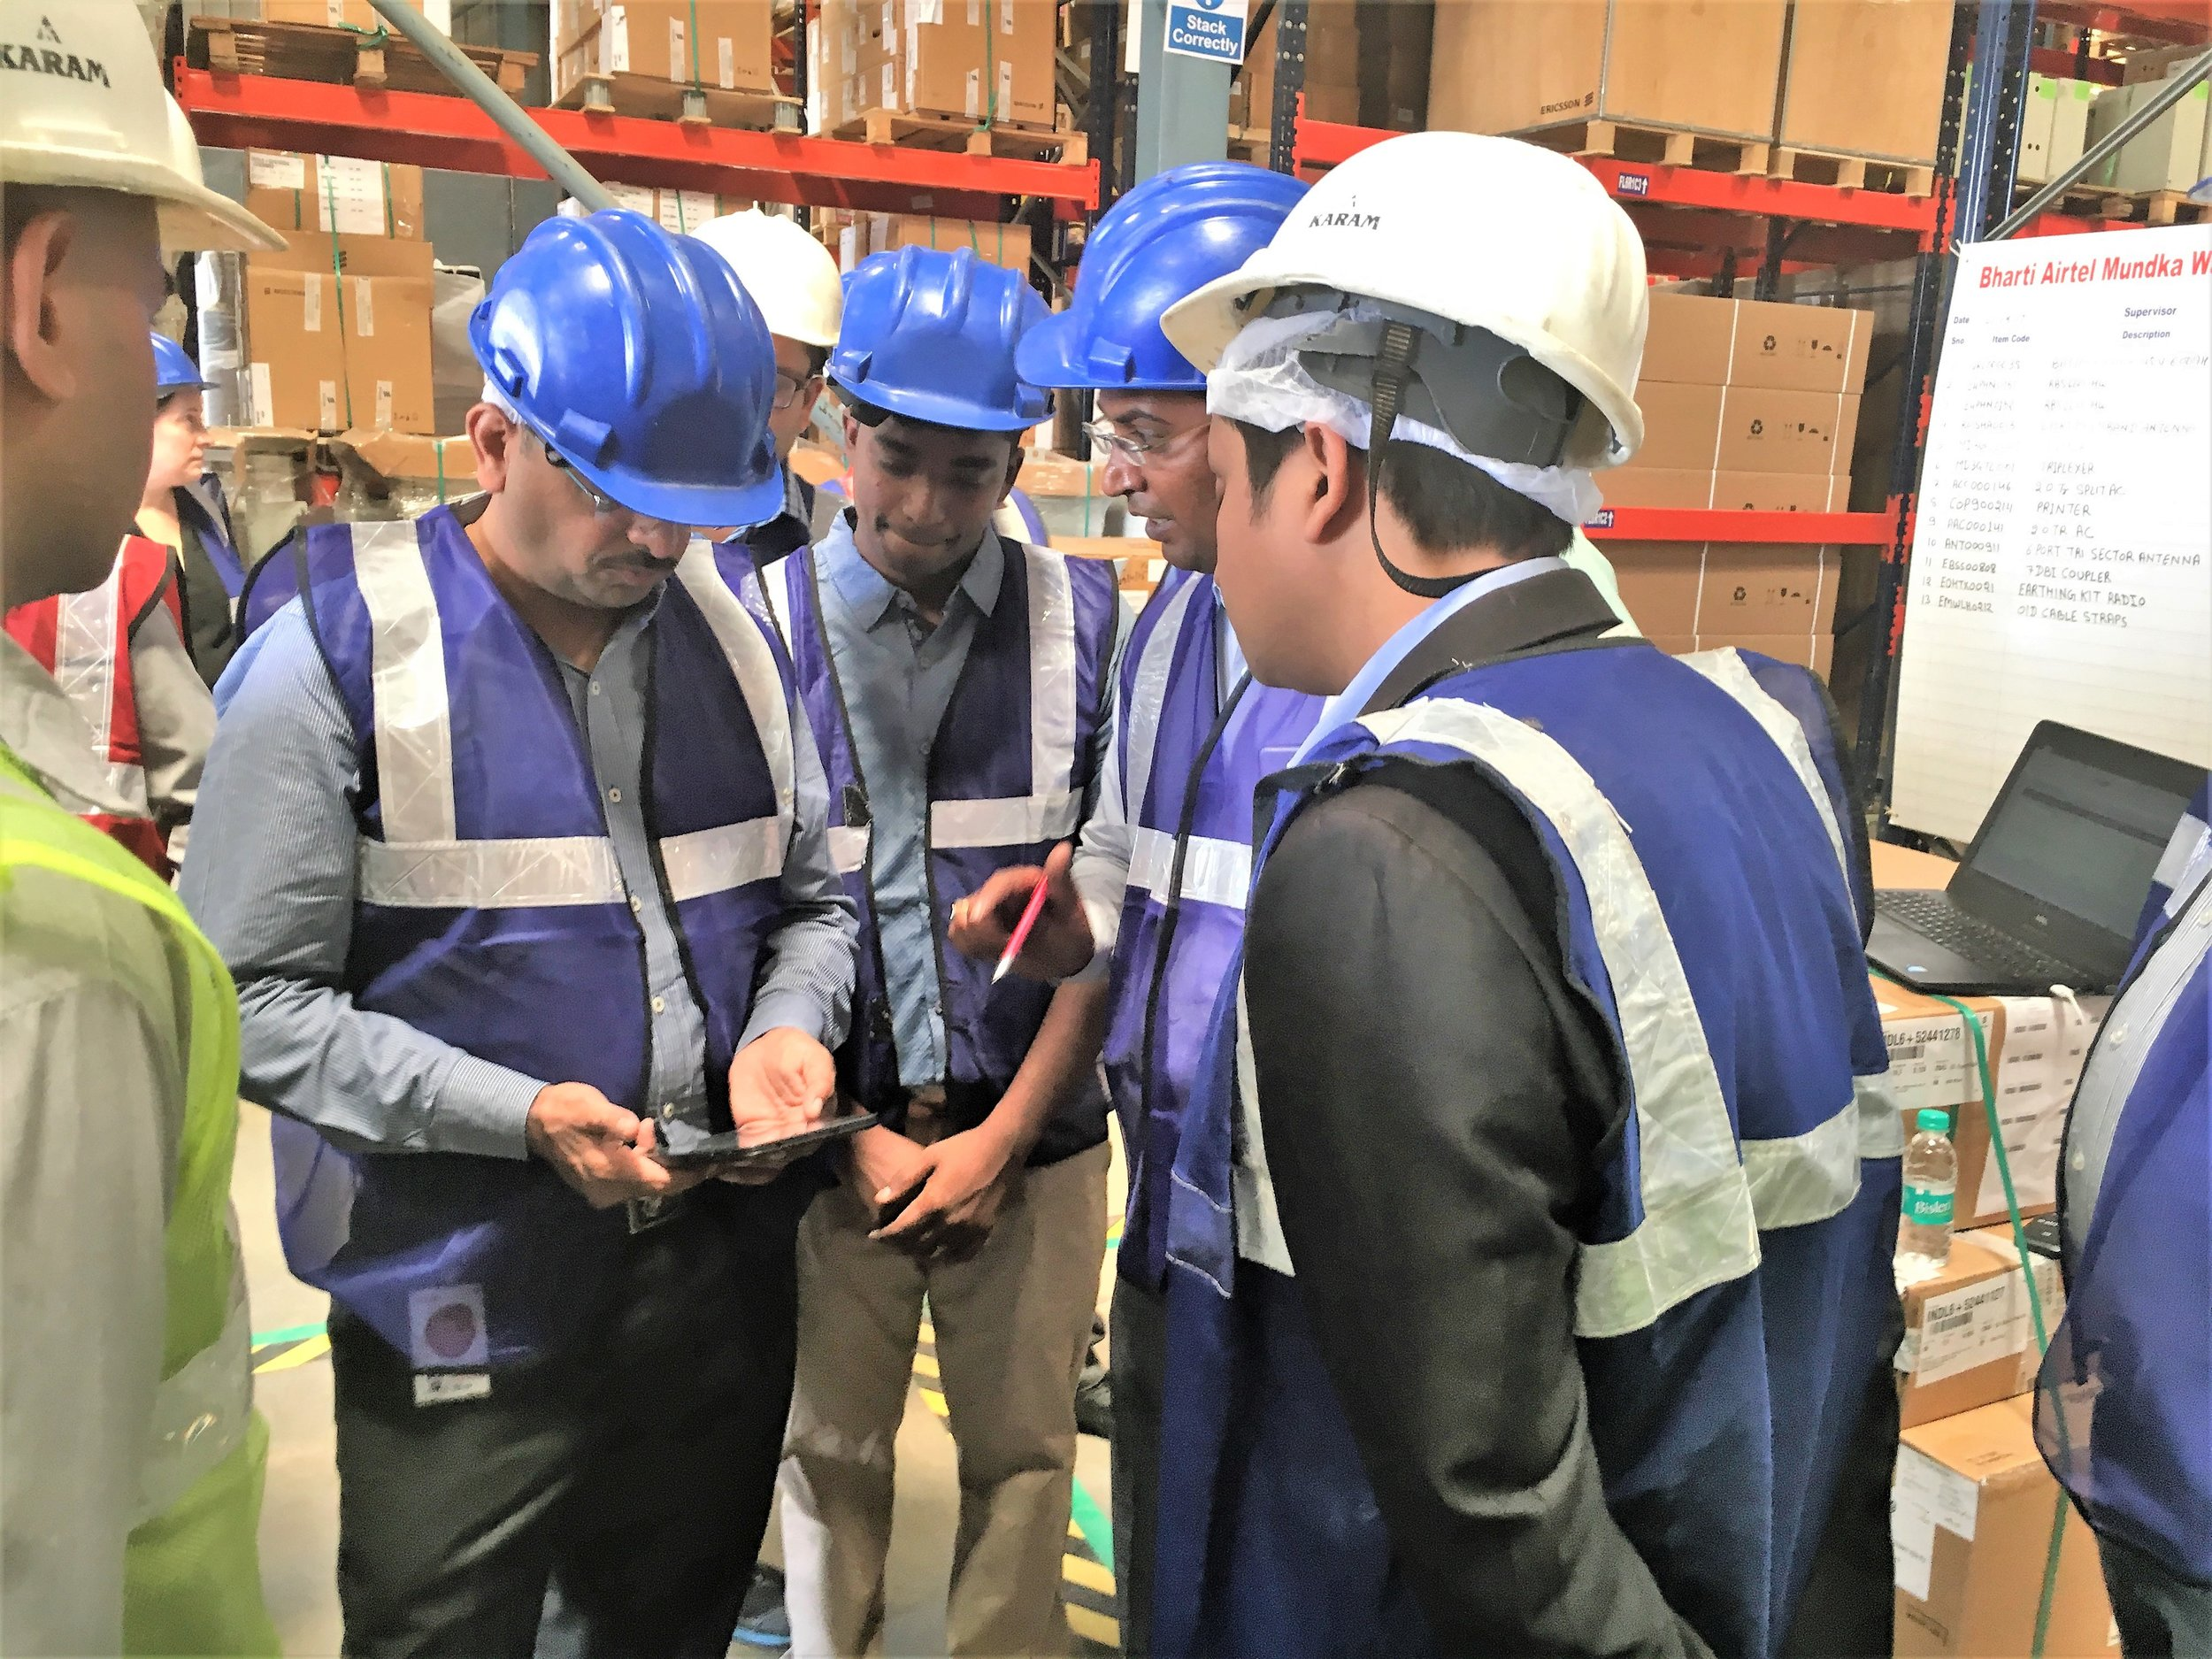 Warehouse workers from one of the world's biggest telecoms use their mobile device as a field decision support tool, intelligently locating spares for efficient inventory management.